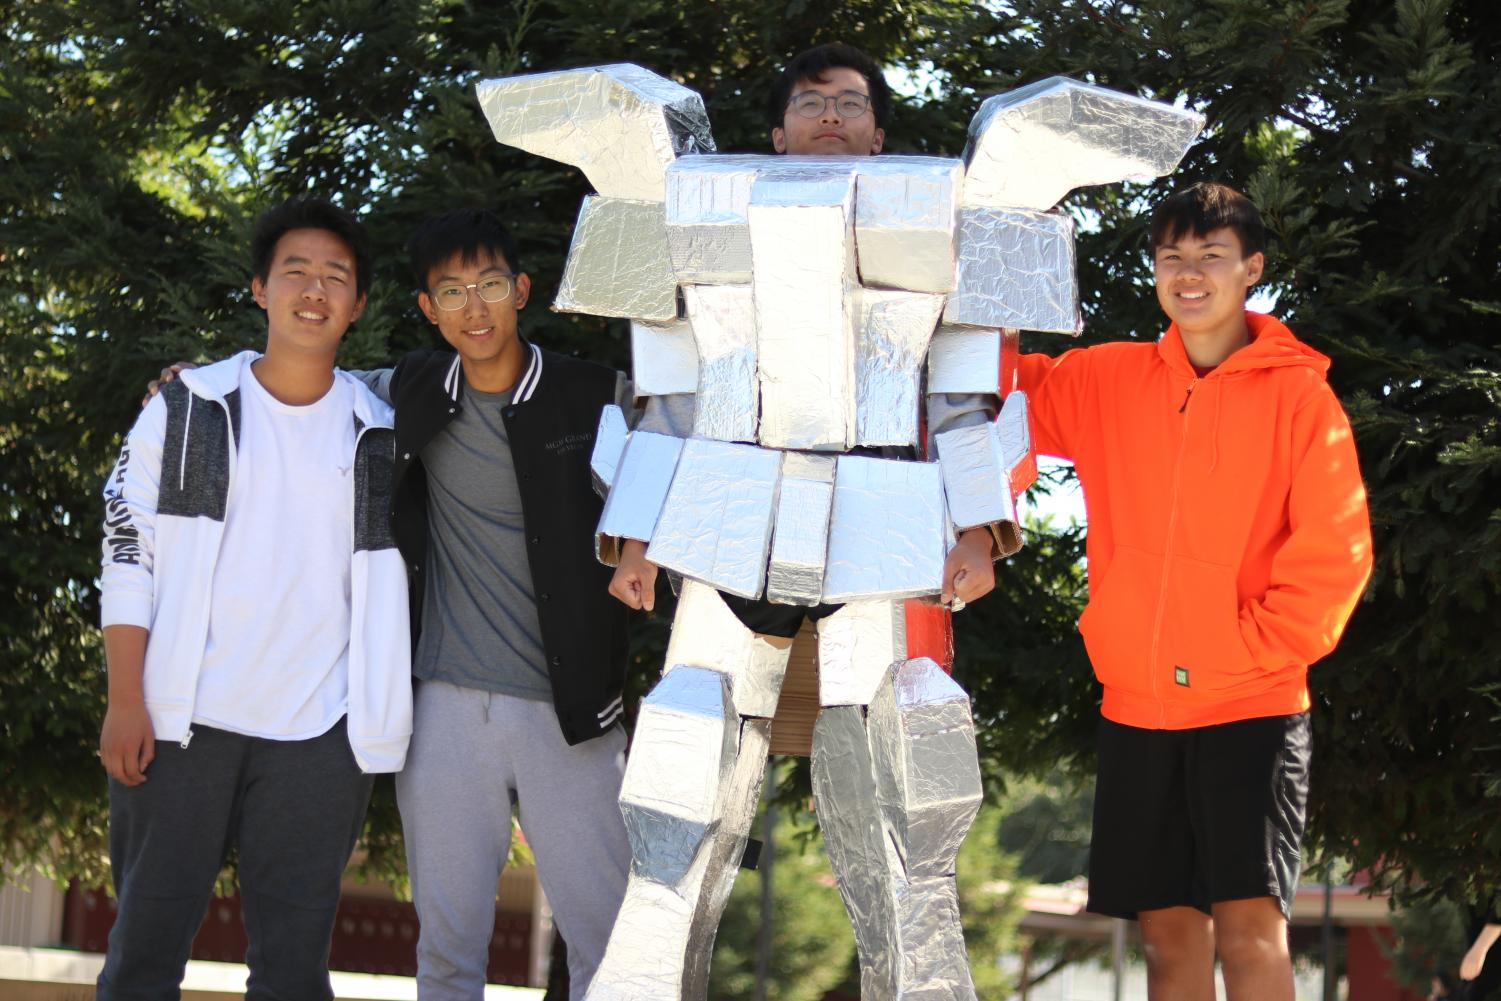 Left to right: Kevin Chen, Eric Lee, Yeongbok Lee, and Colin Rich, the four creators of the costume.